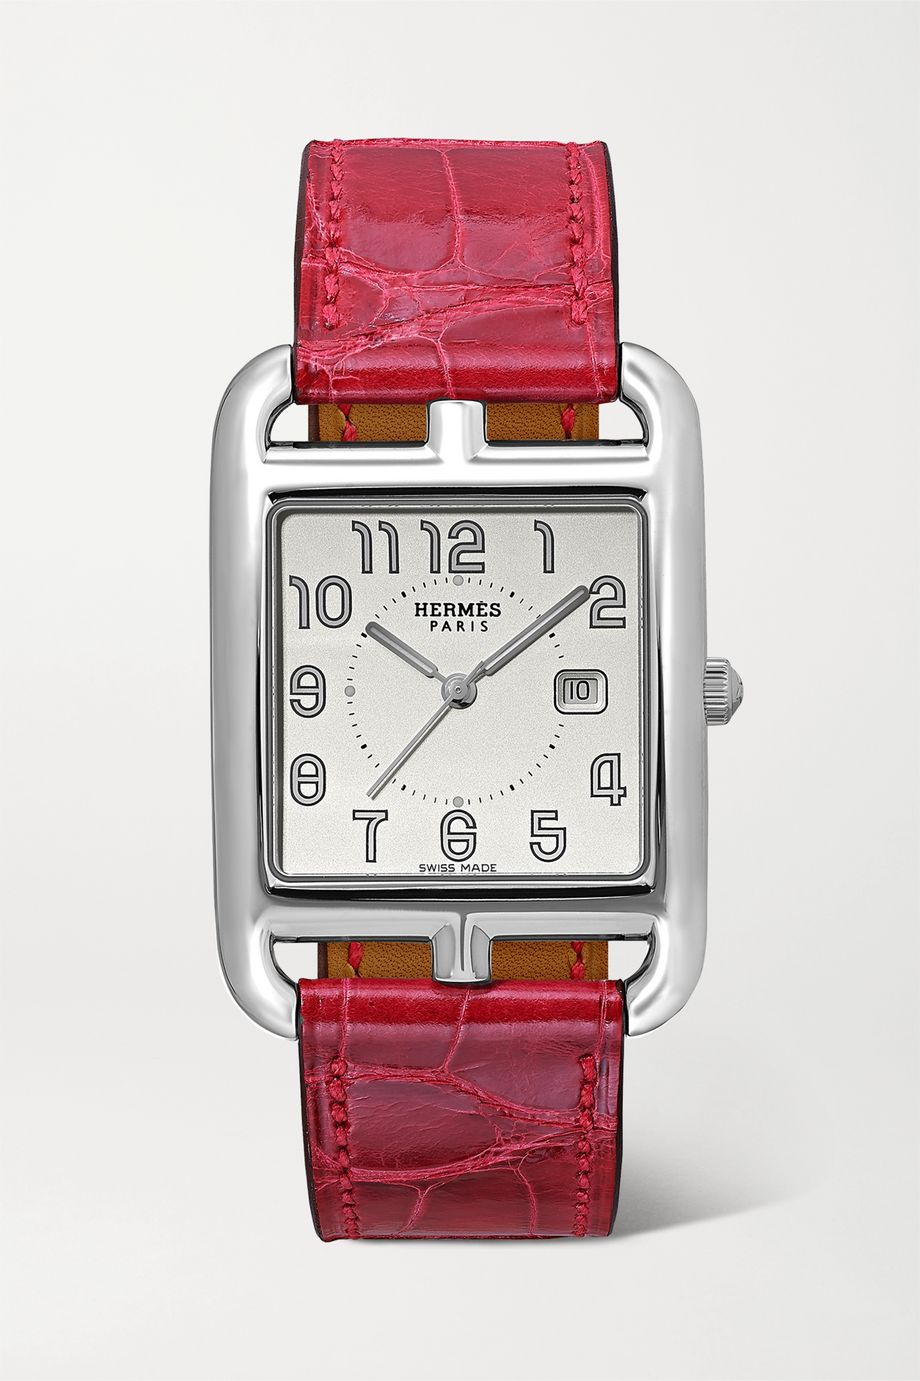 Hermès Timepieces Montre en acier inoxydable à bracelet en alligator Cape Cod Large 29 mm